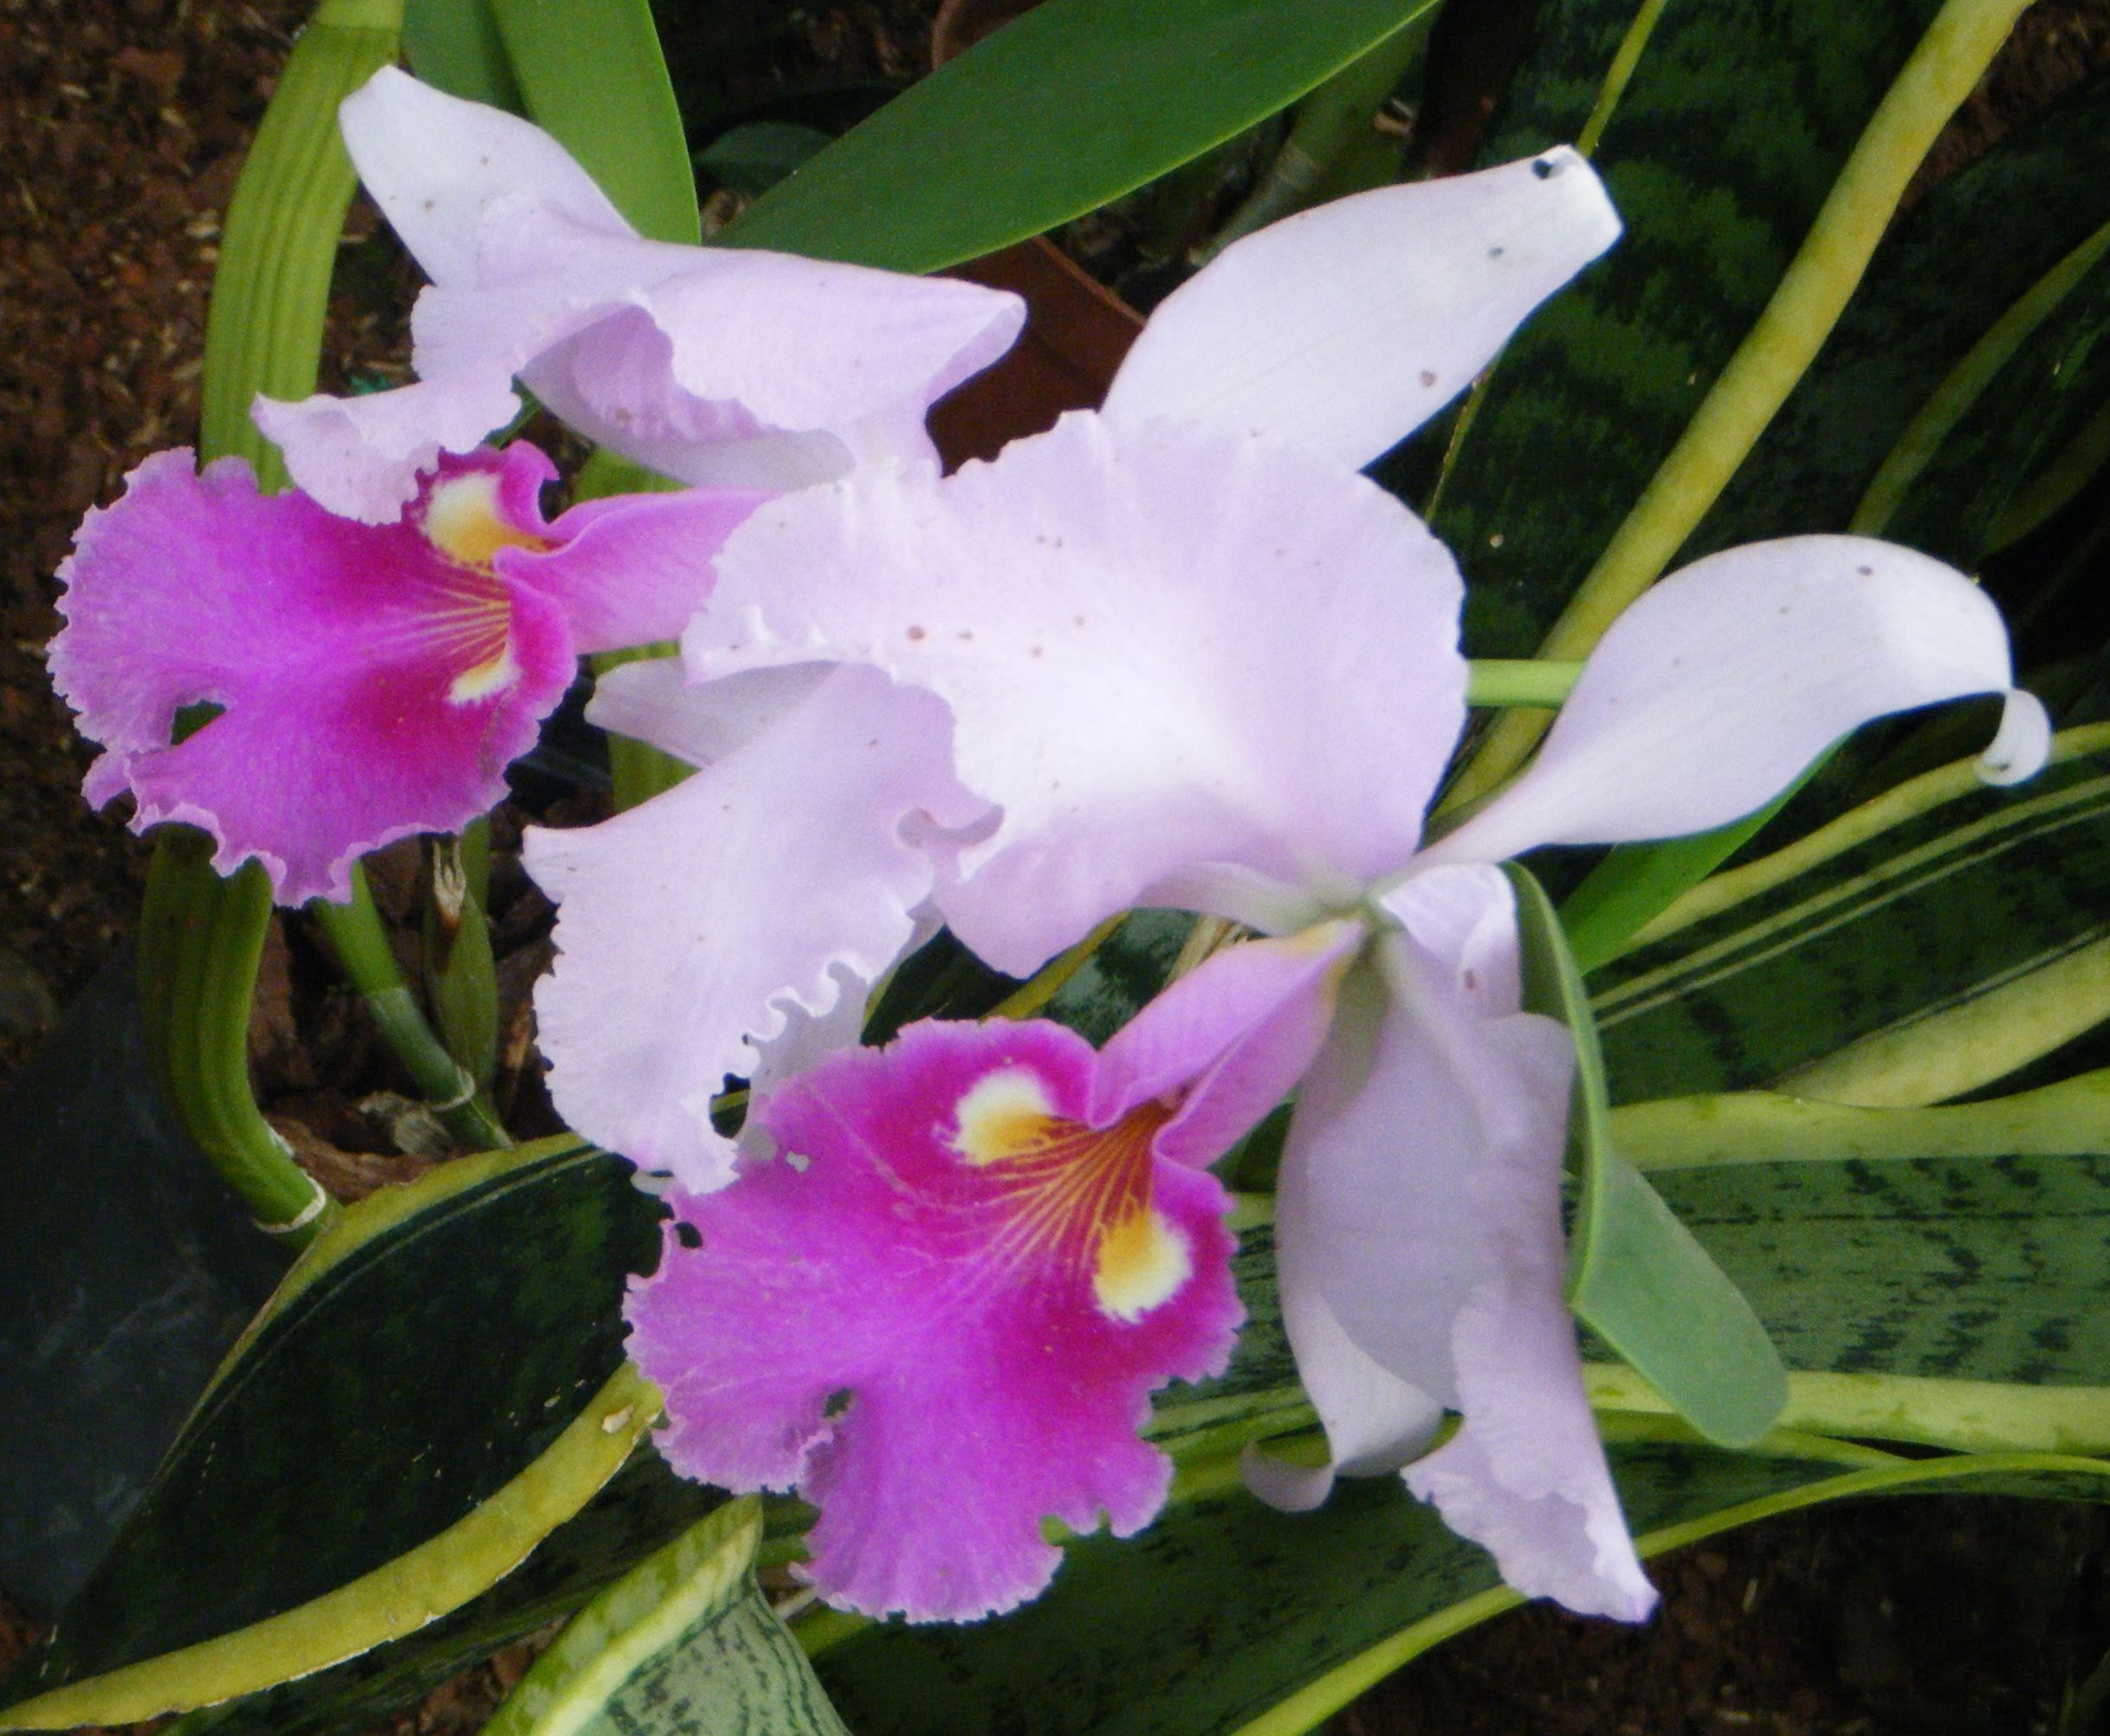 Pin By Yuerly Betancur On Jardin Botanico Orquideas Bromelias Y Helechos Orchids Cattleya Pin Collection